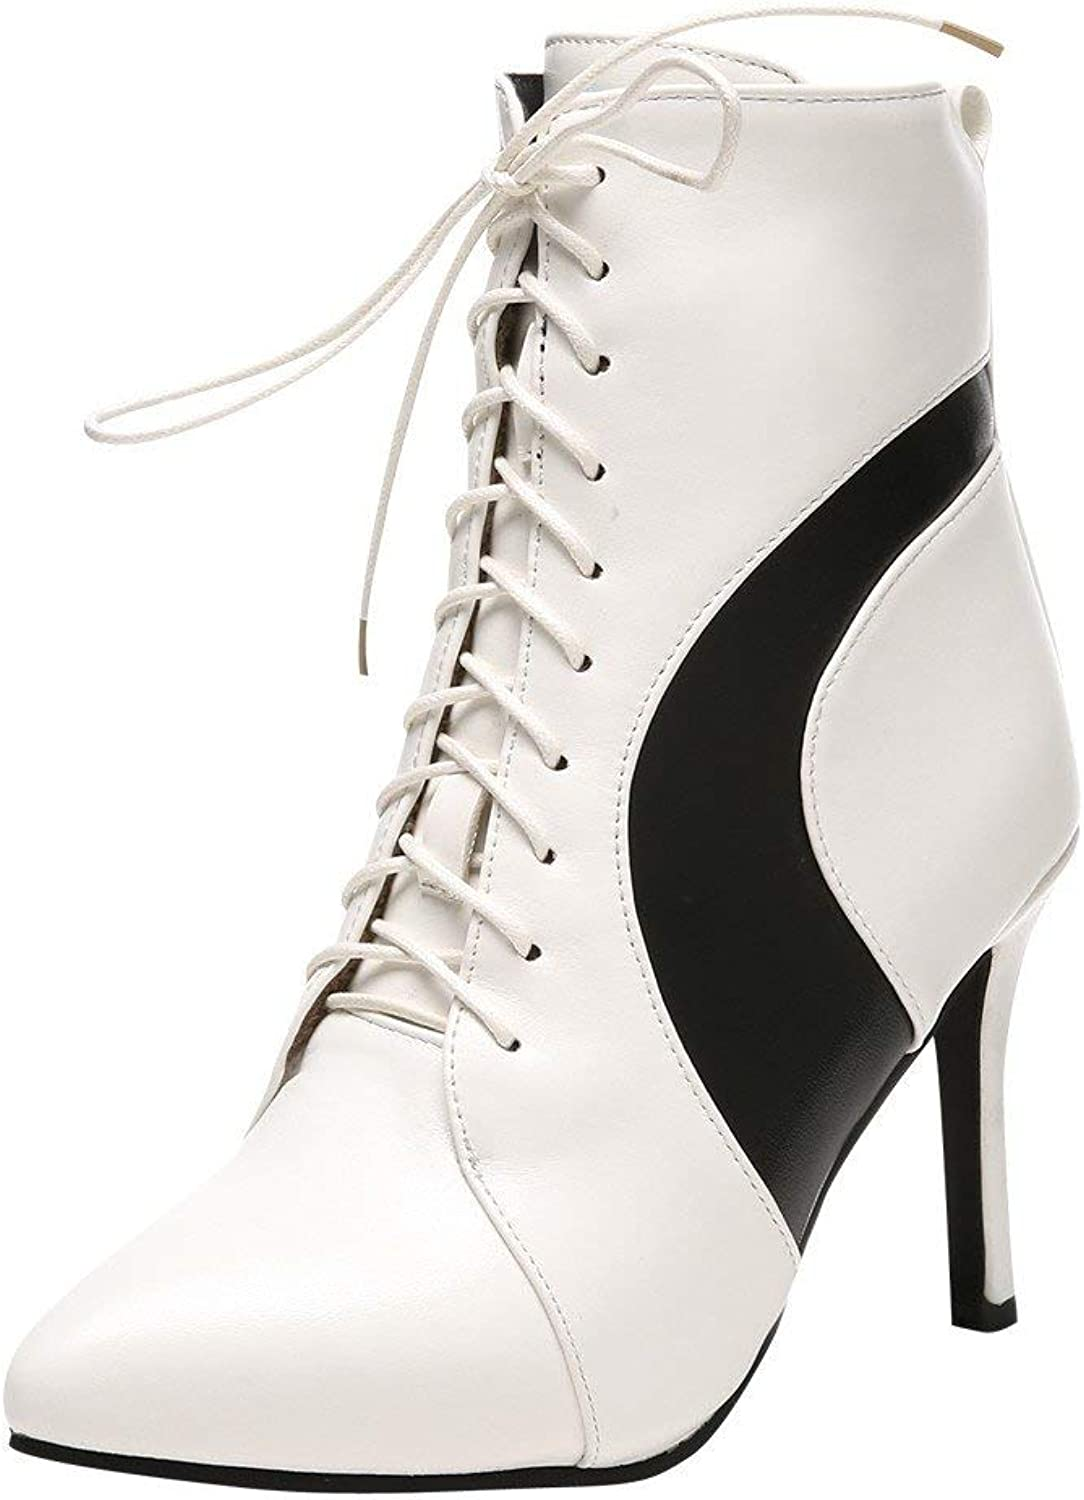 Gedigits Women's Lace Up Multicolord High Heel Short Boots White 6 M US